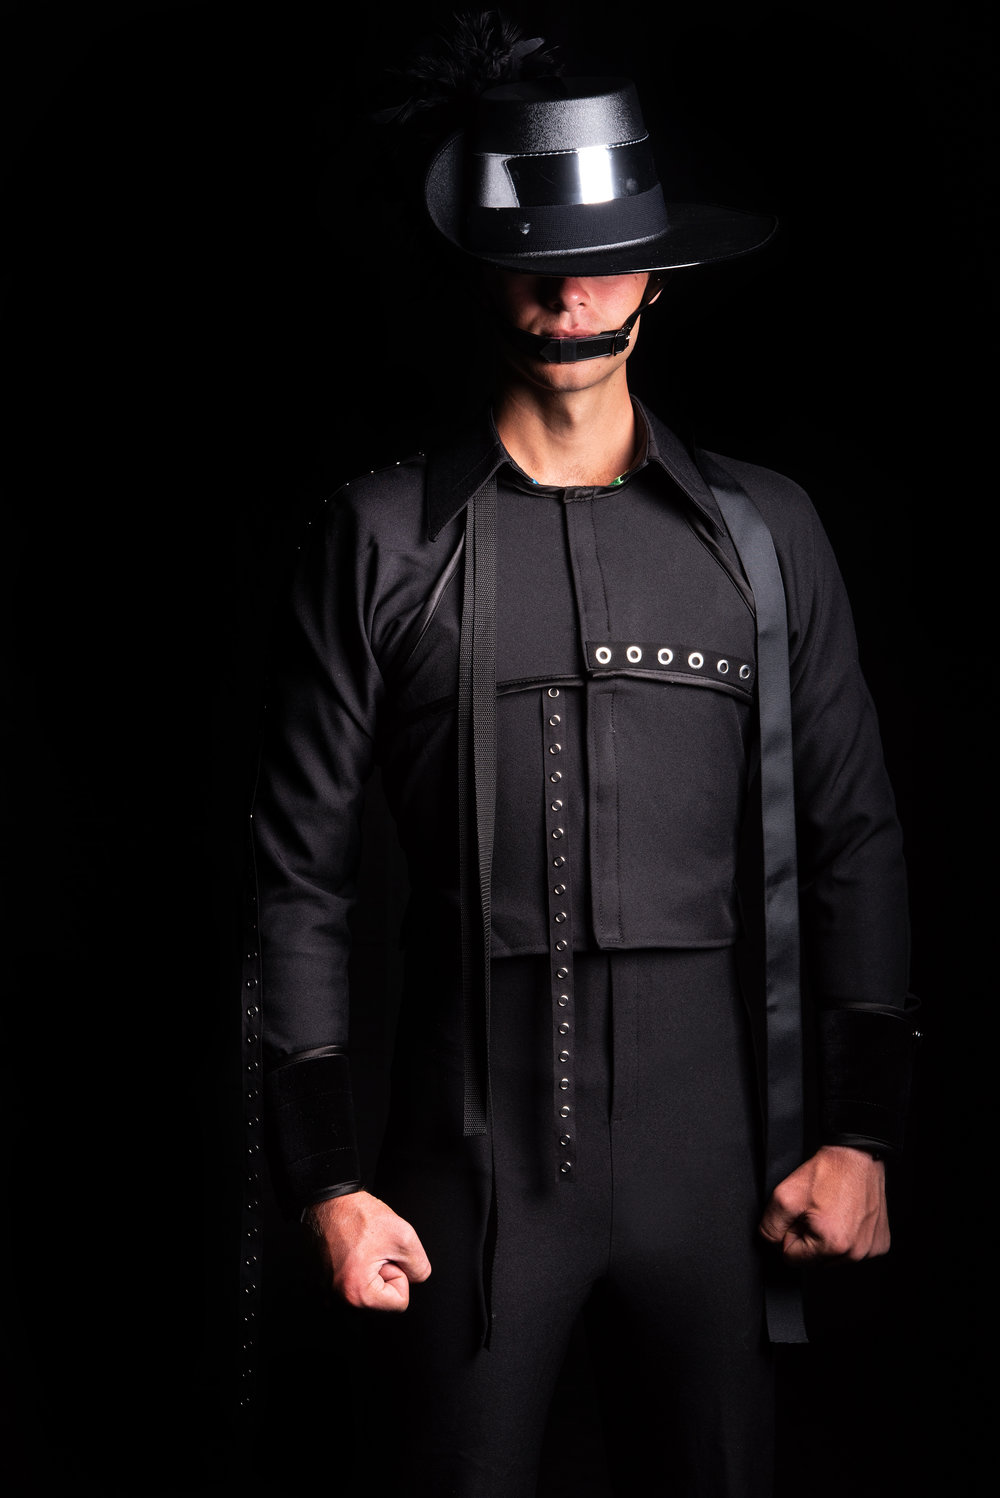 20180613 Cavaliers Uniform Reveal 004.JPG